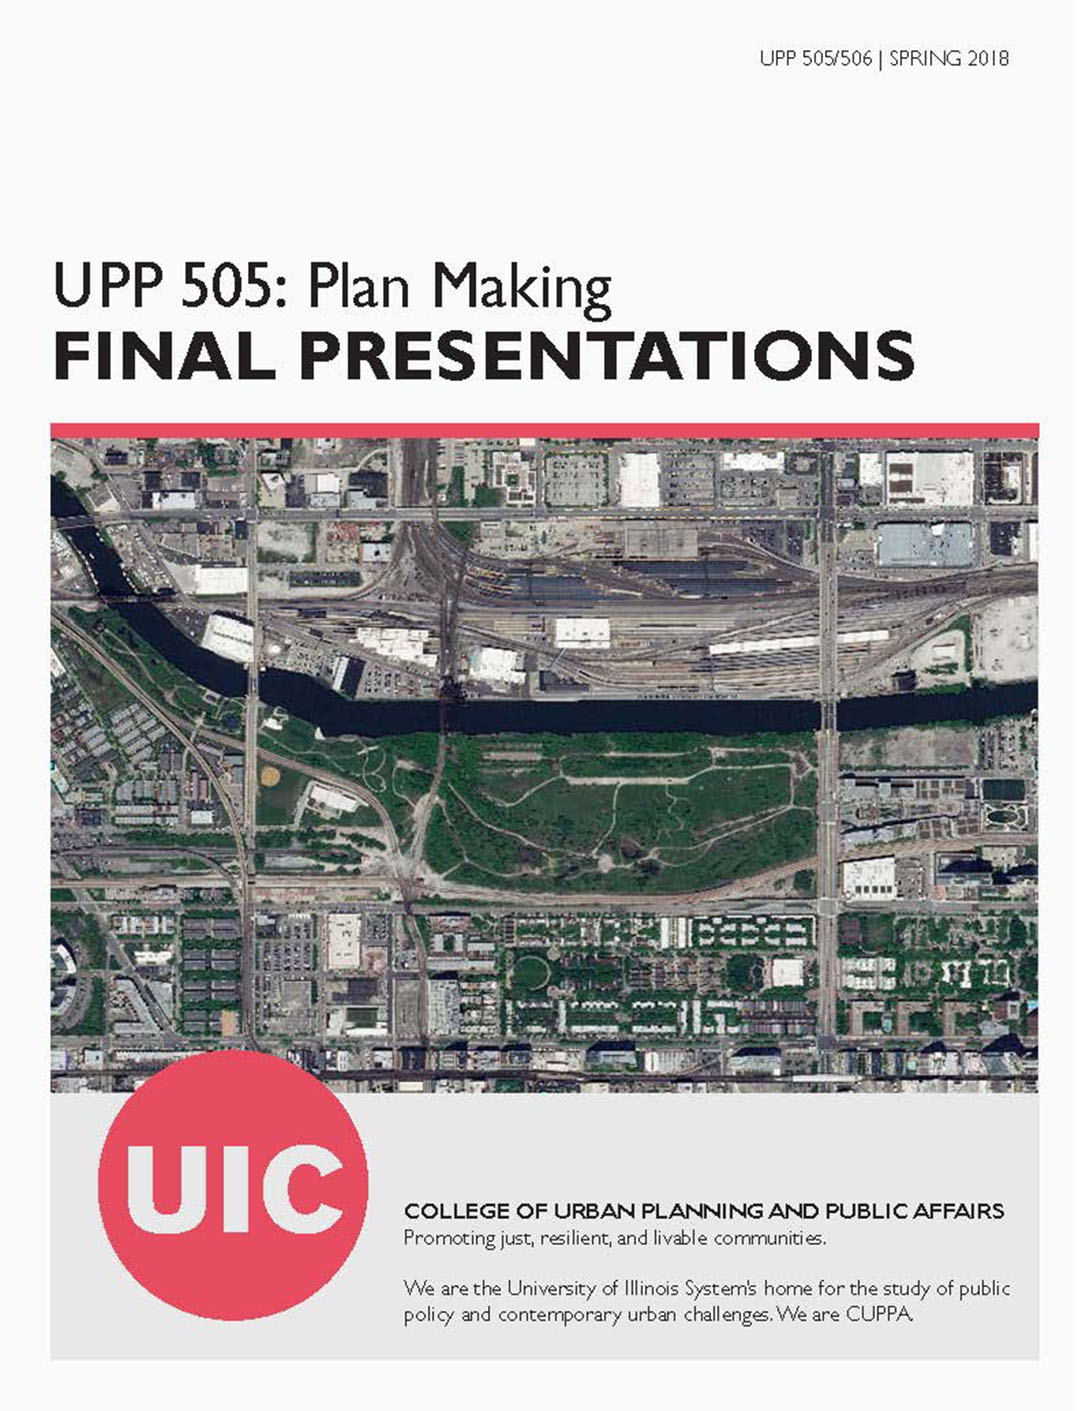 Cover of UPP 505 Plan Making Final Presentations